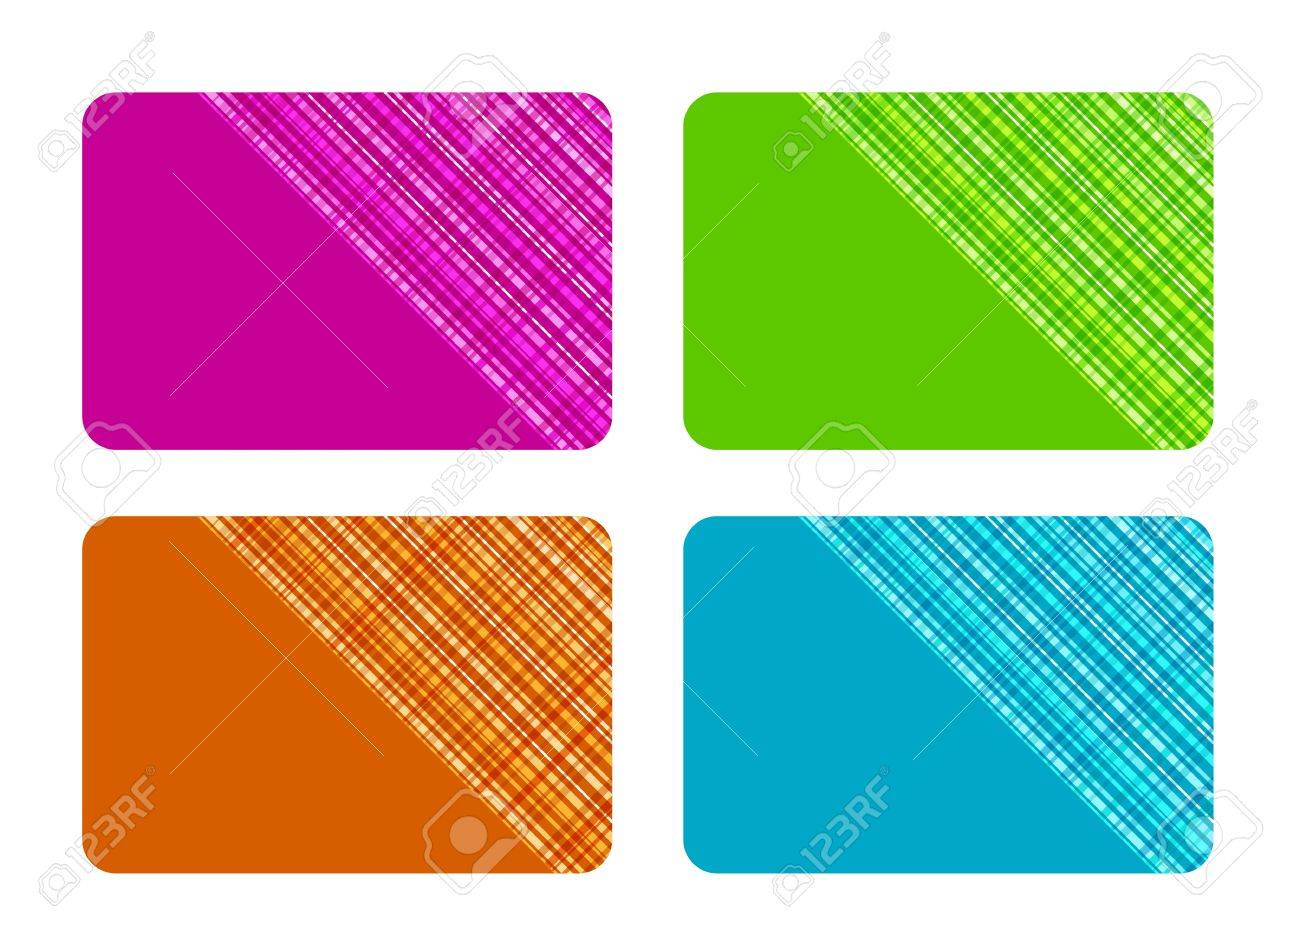 Business Cards with Checked Texture Stock Vector - 17209140